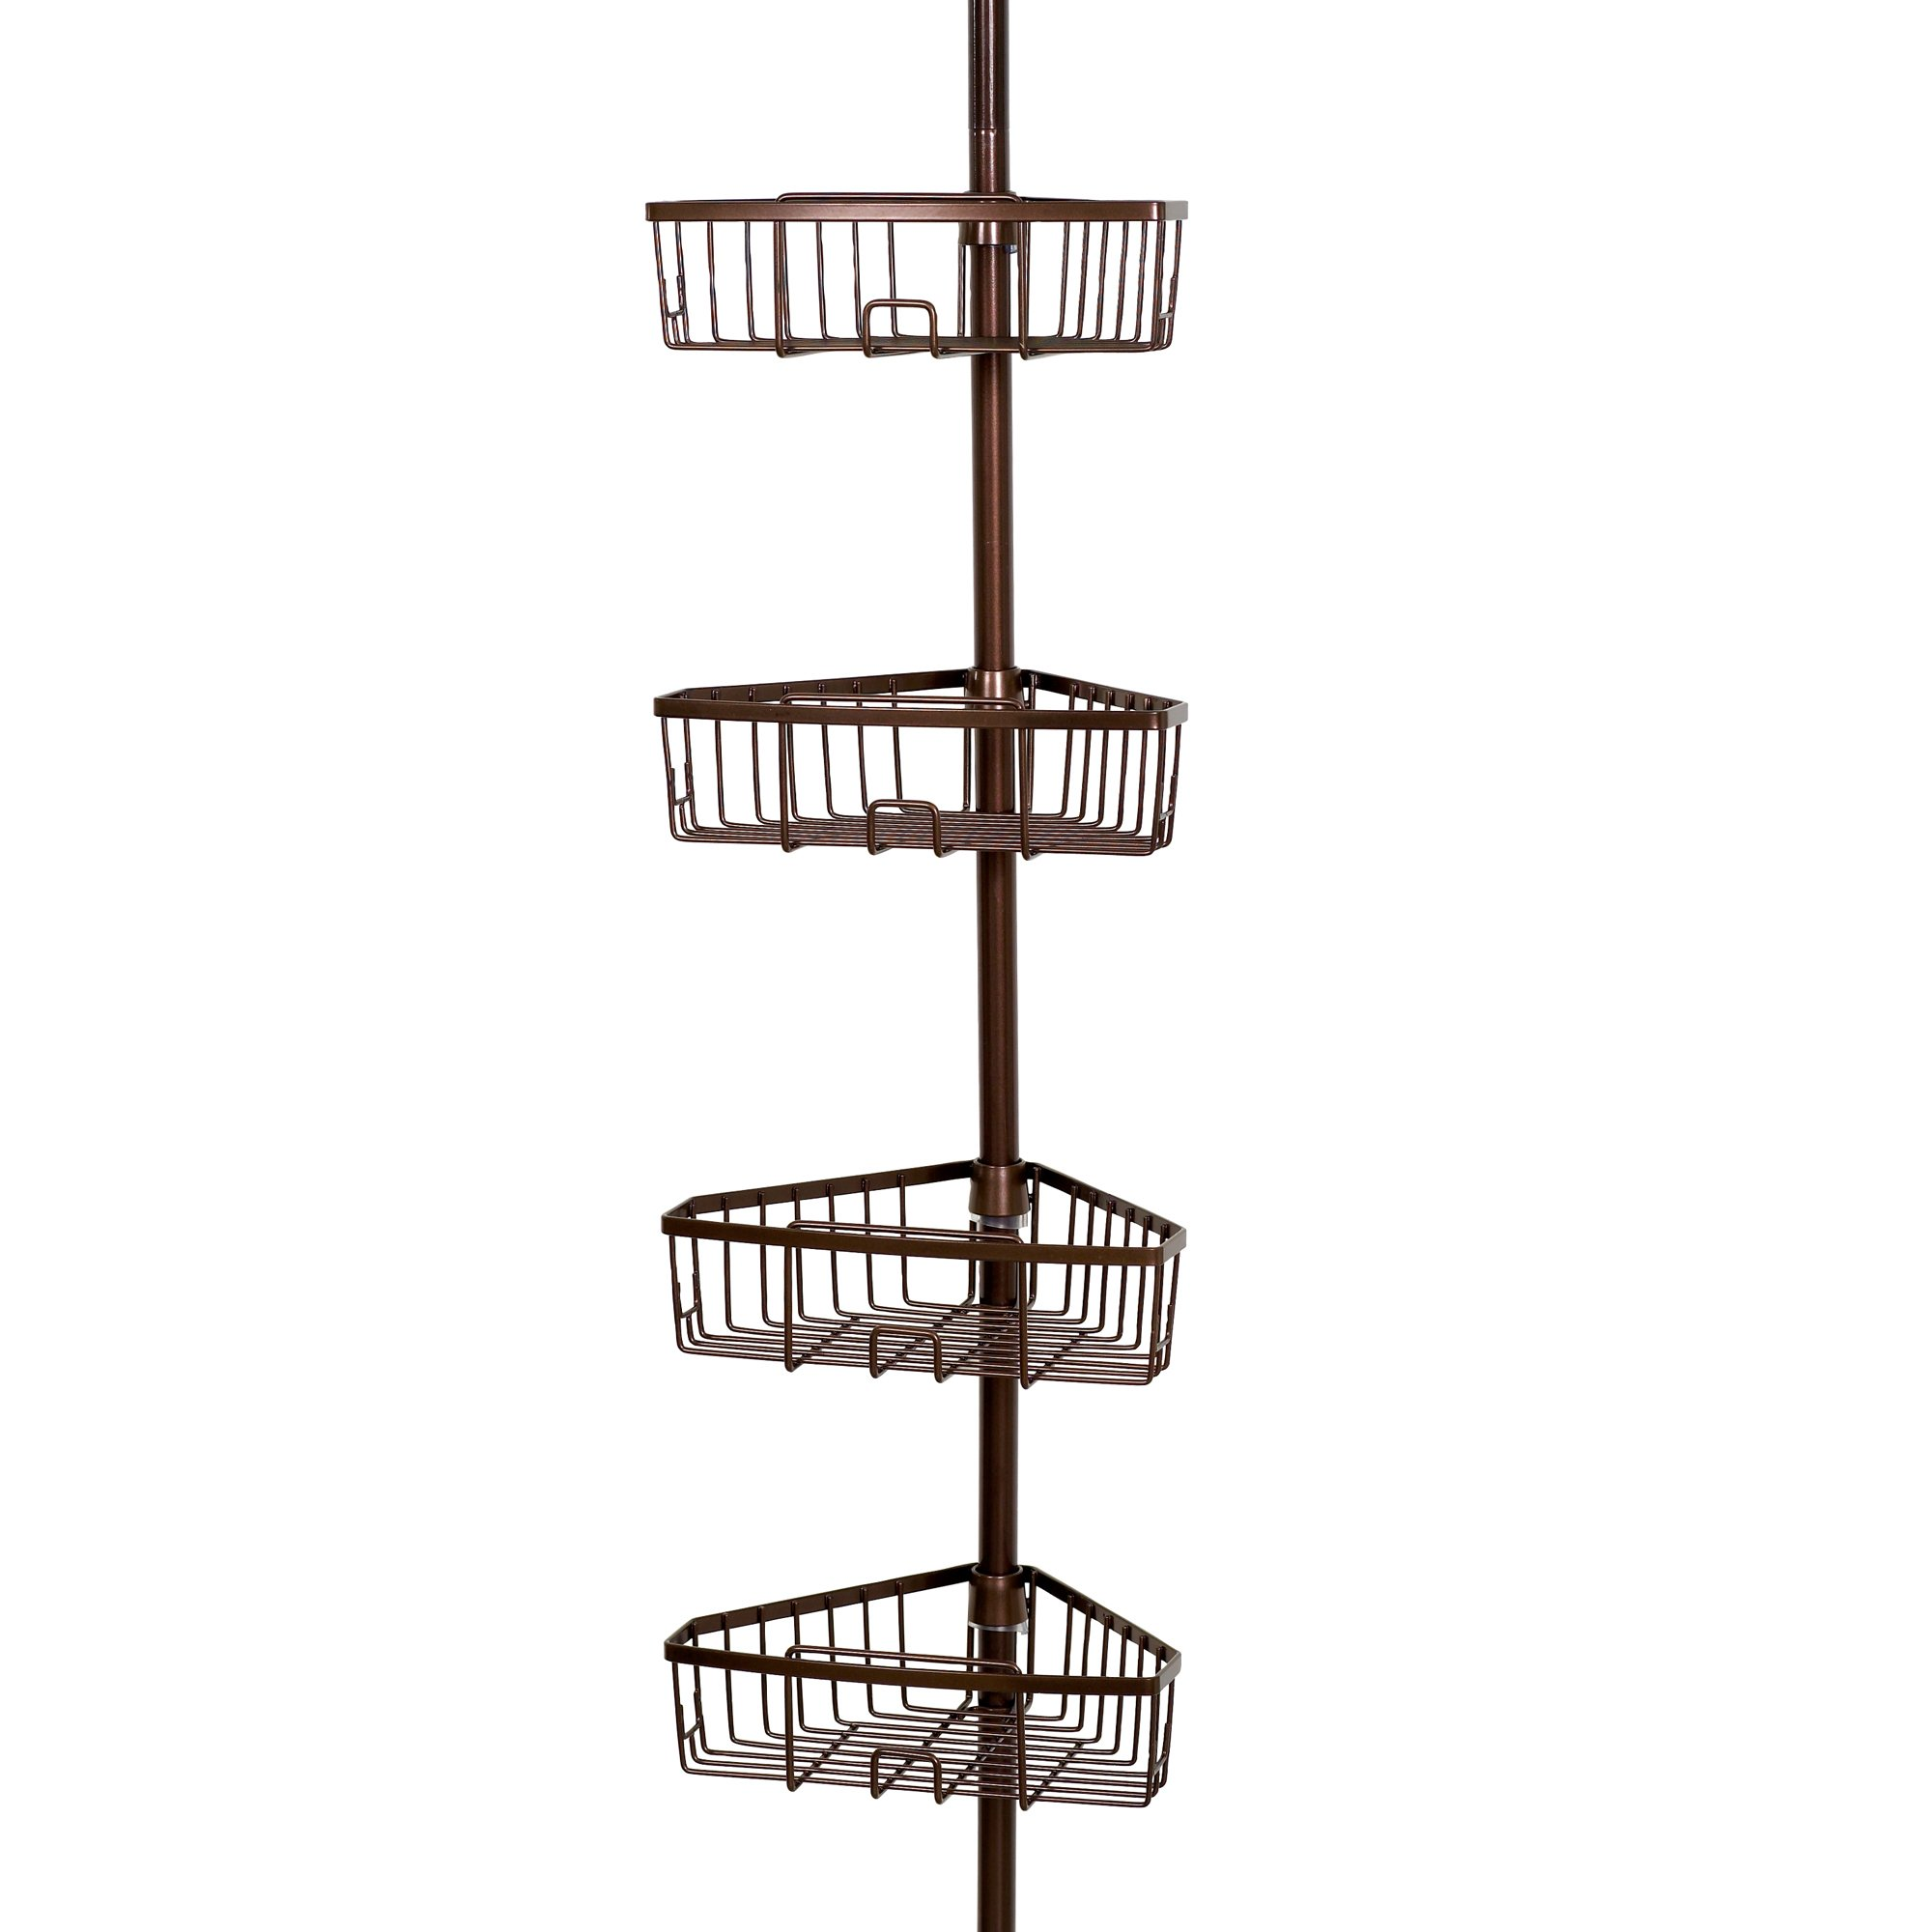 Zenna Home 2127HB, Tension Corner Pole Caddy, Oil Rubbed Bronze